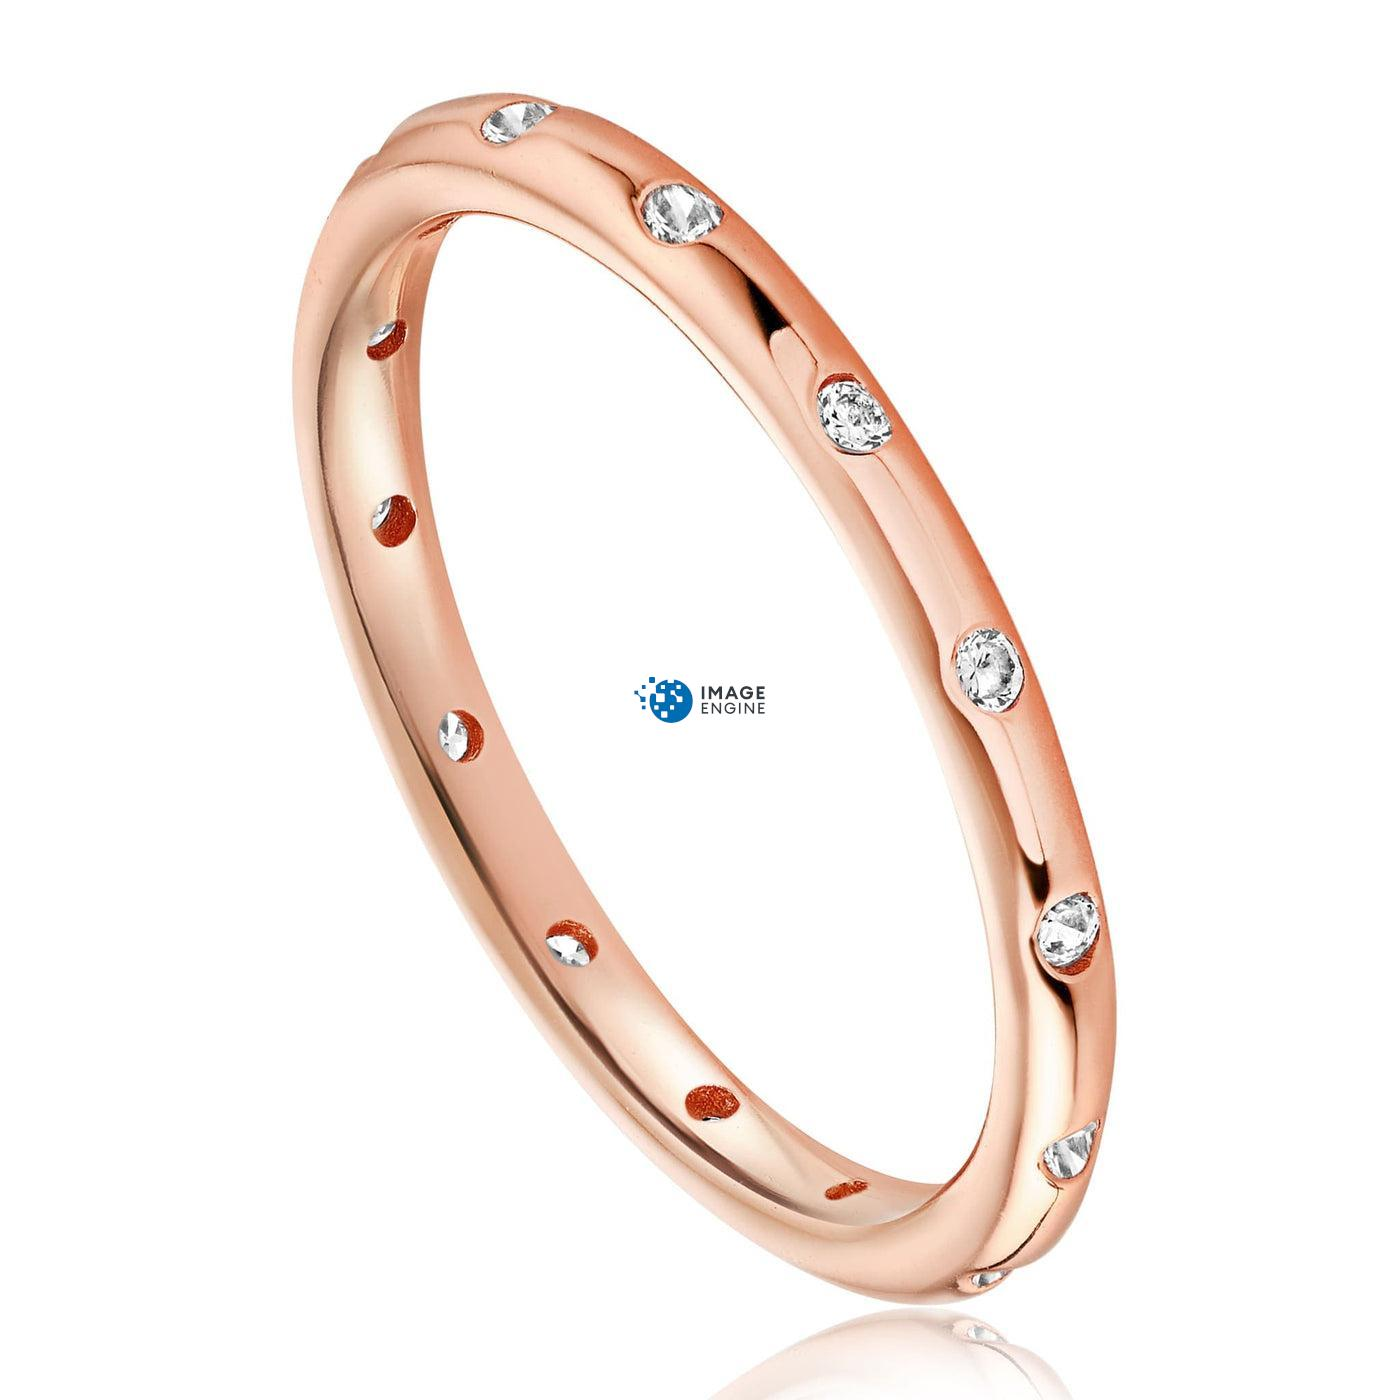 Droplet Ring - Three Quarter View - 18K Rose Gold Vermeil